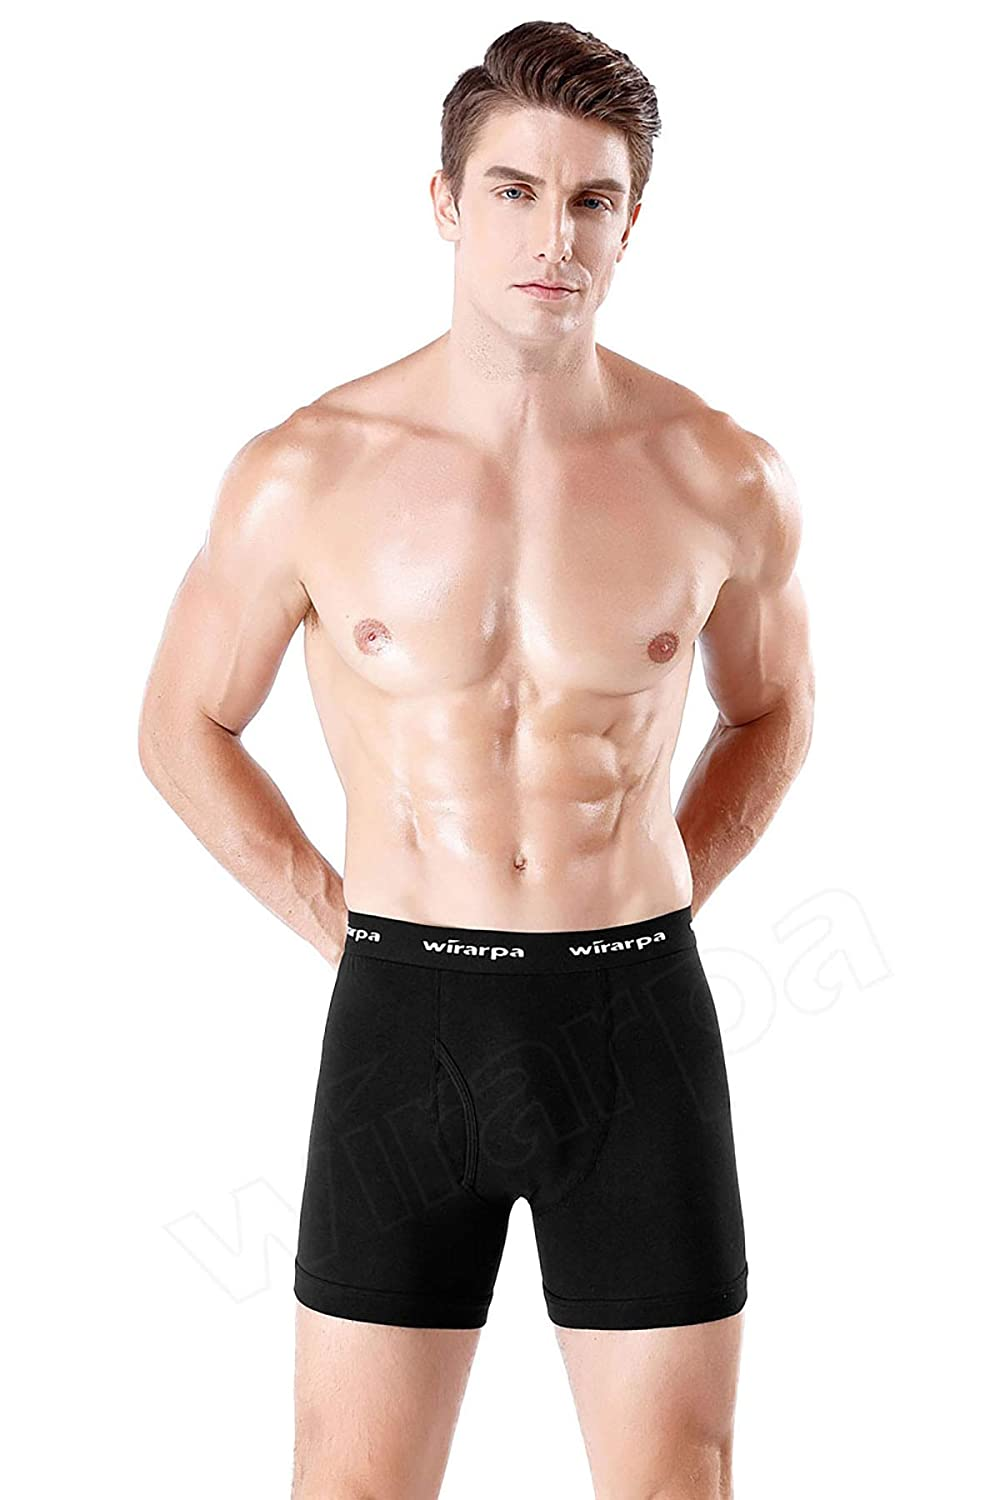 wirarpa Mens Black Boxer Briefs Cotton Stretch No Ride Up Underwear Front Fly with Pouch Underwear Multipack